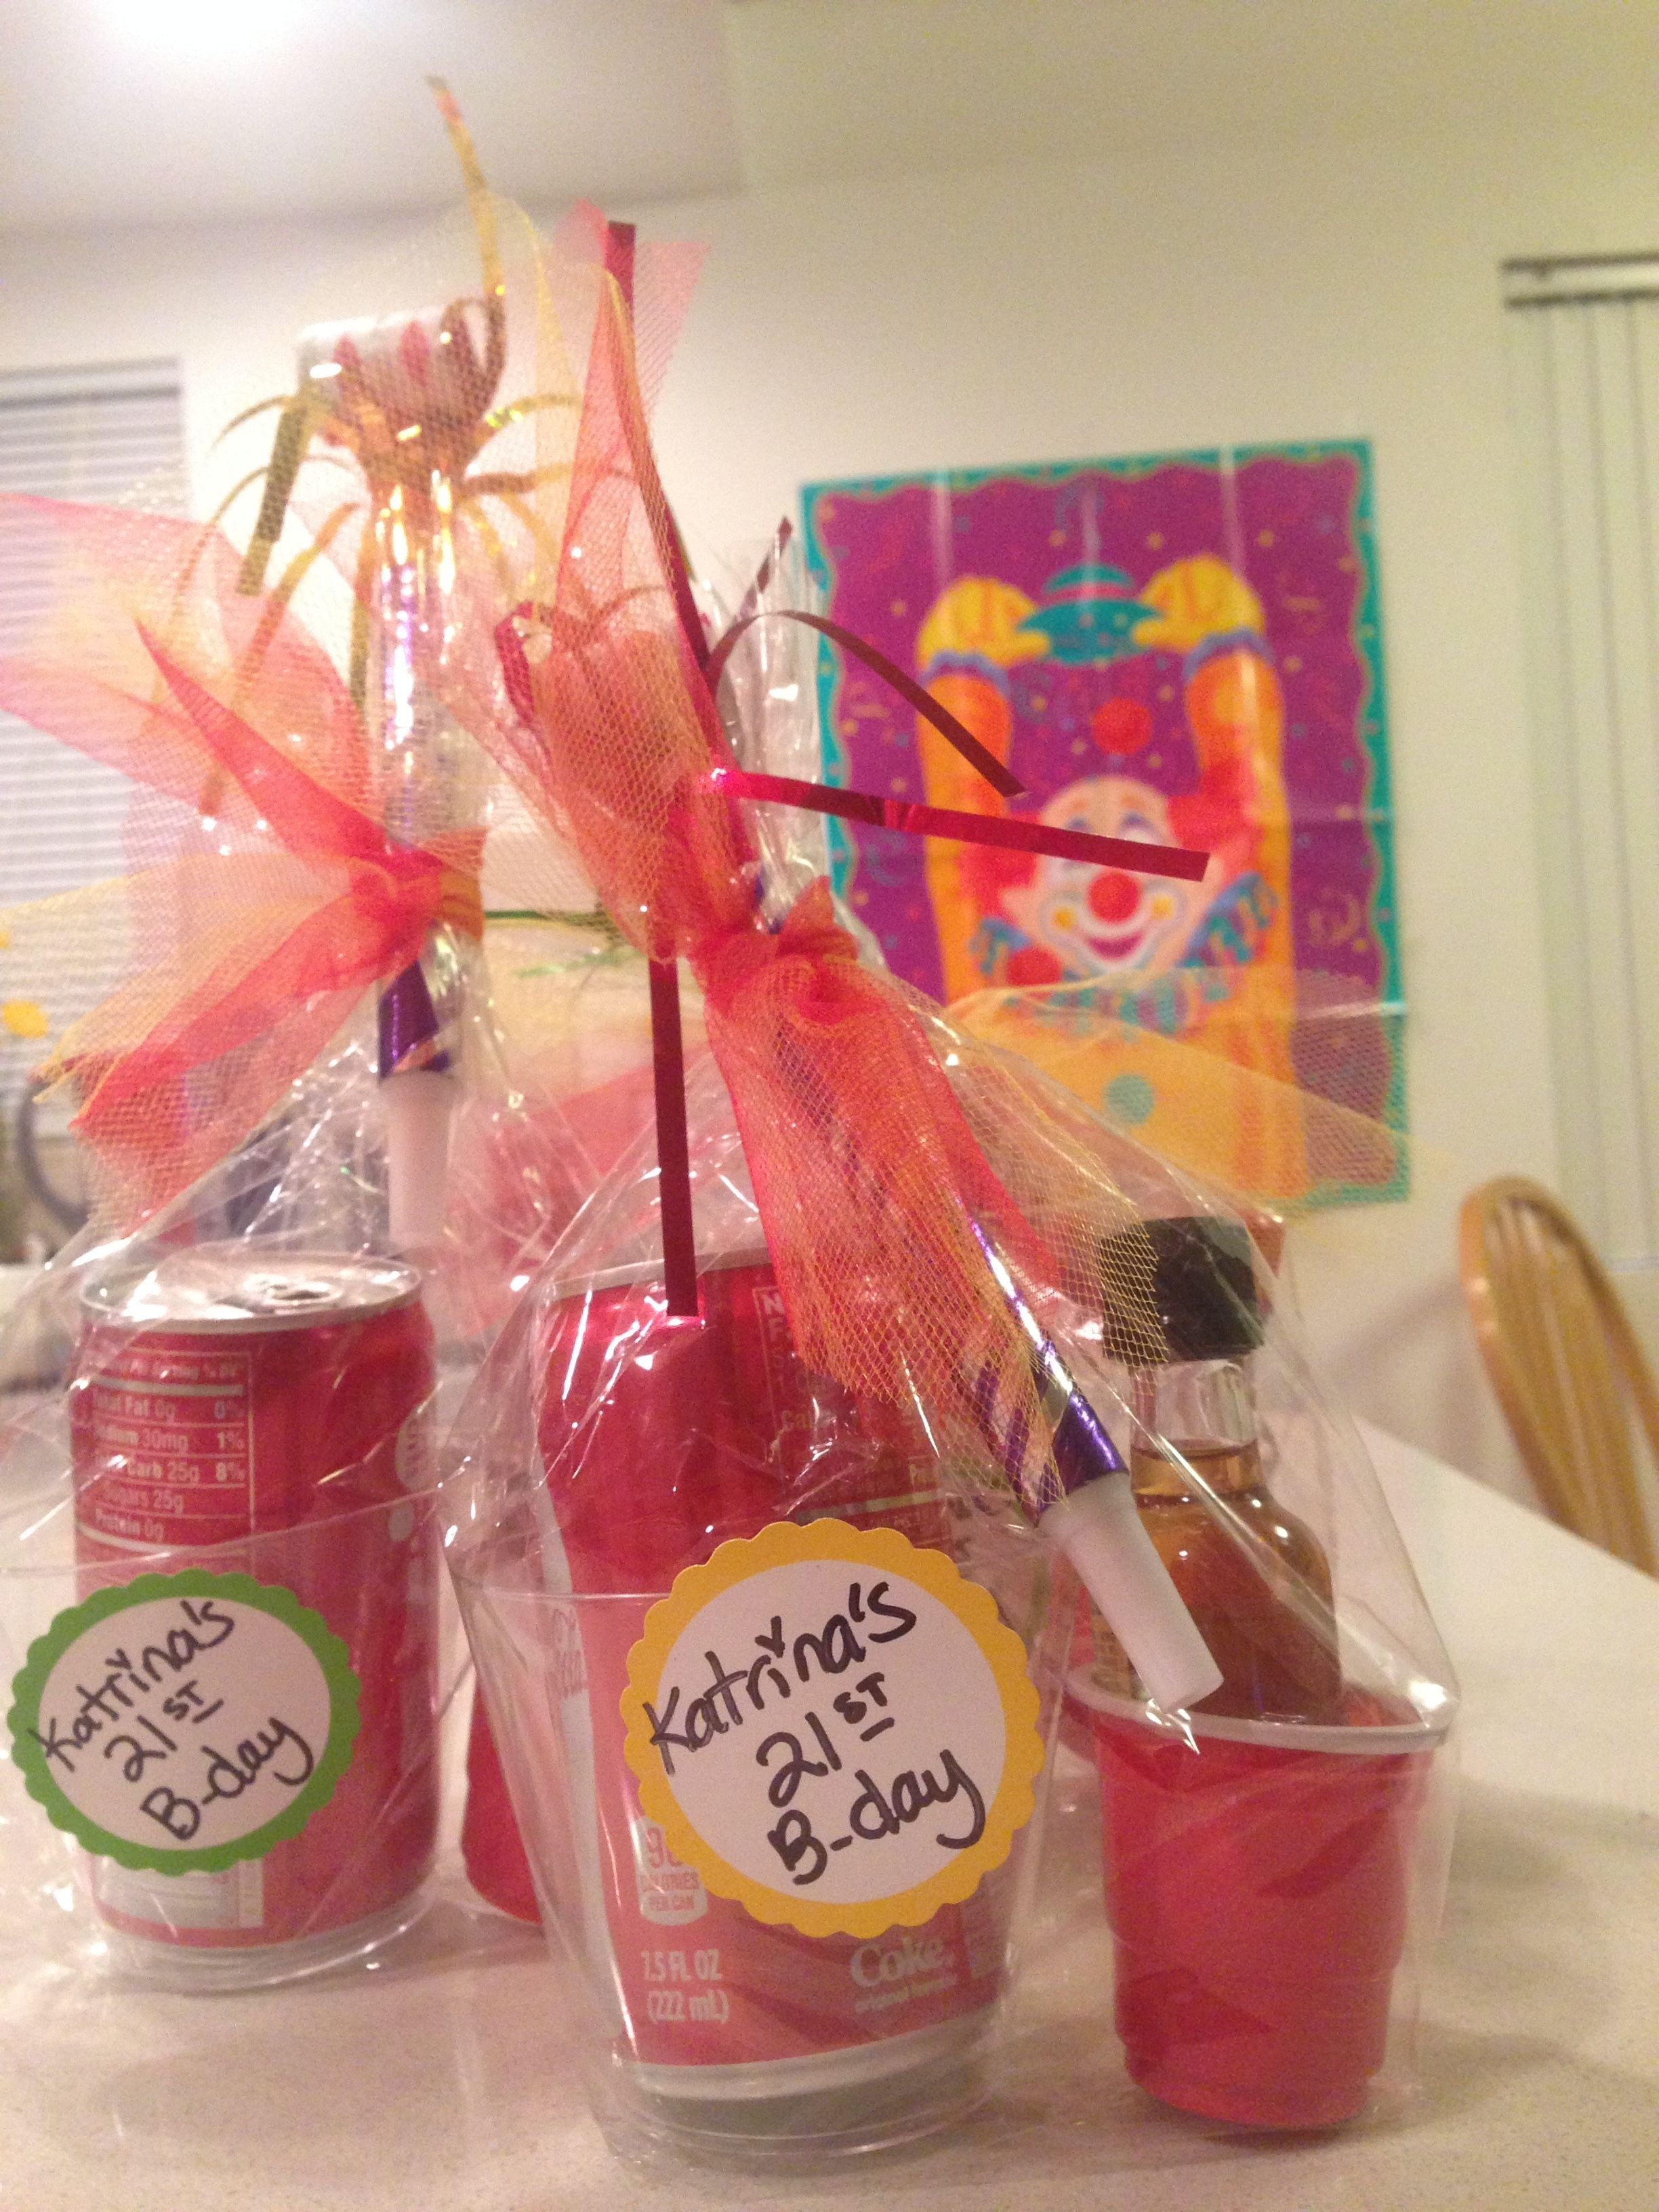 21st Birthday Party Favors 21st Birthday Party Favors Birthday Party 21 Birthday Party Favors